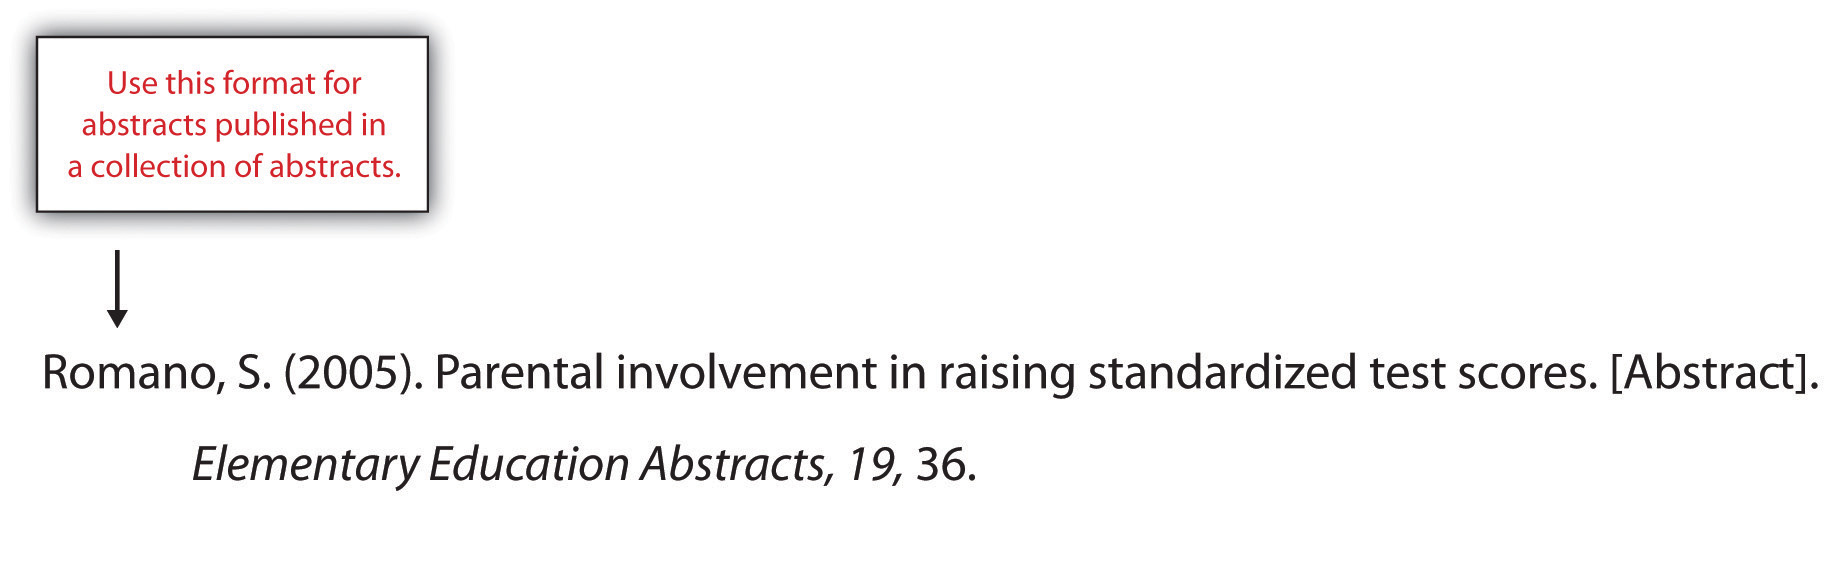 When creating a references section, use this format for abstracts published in a collection of abstracts